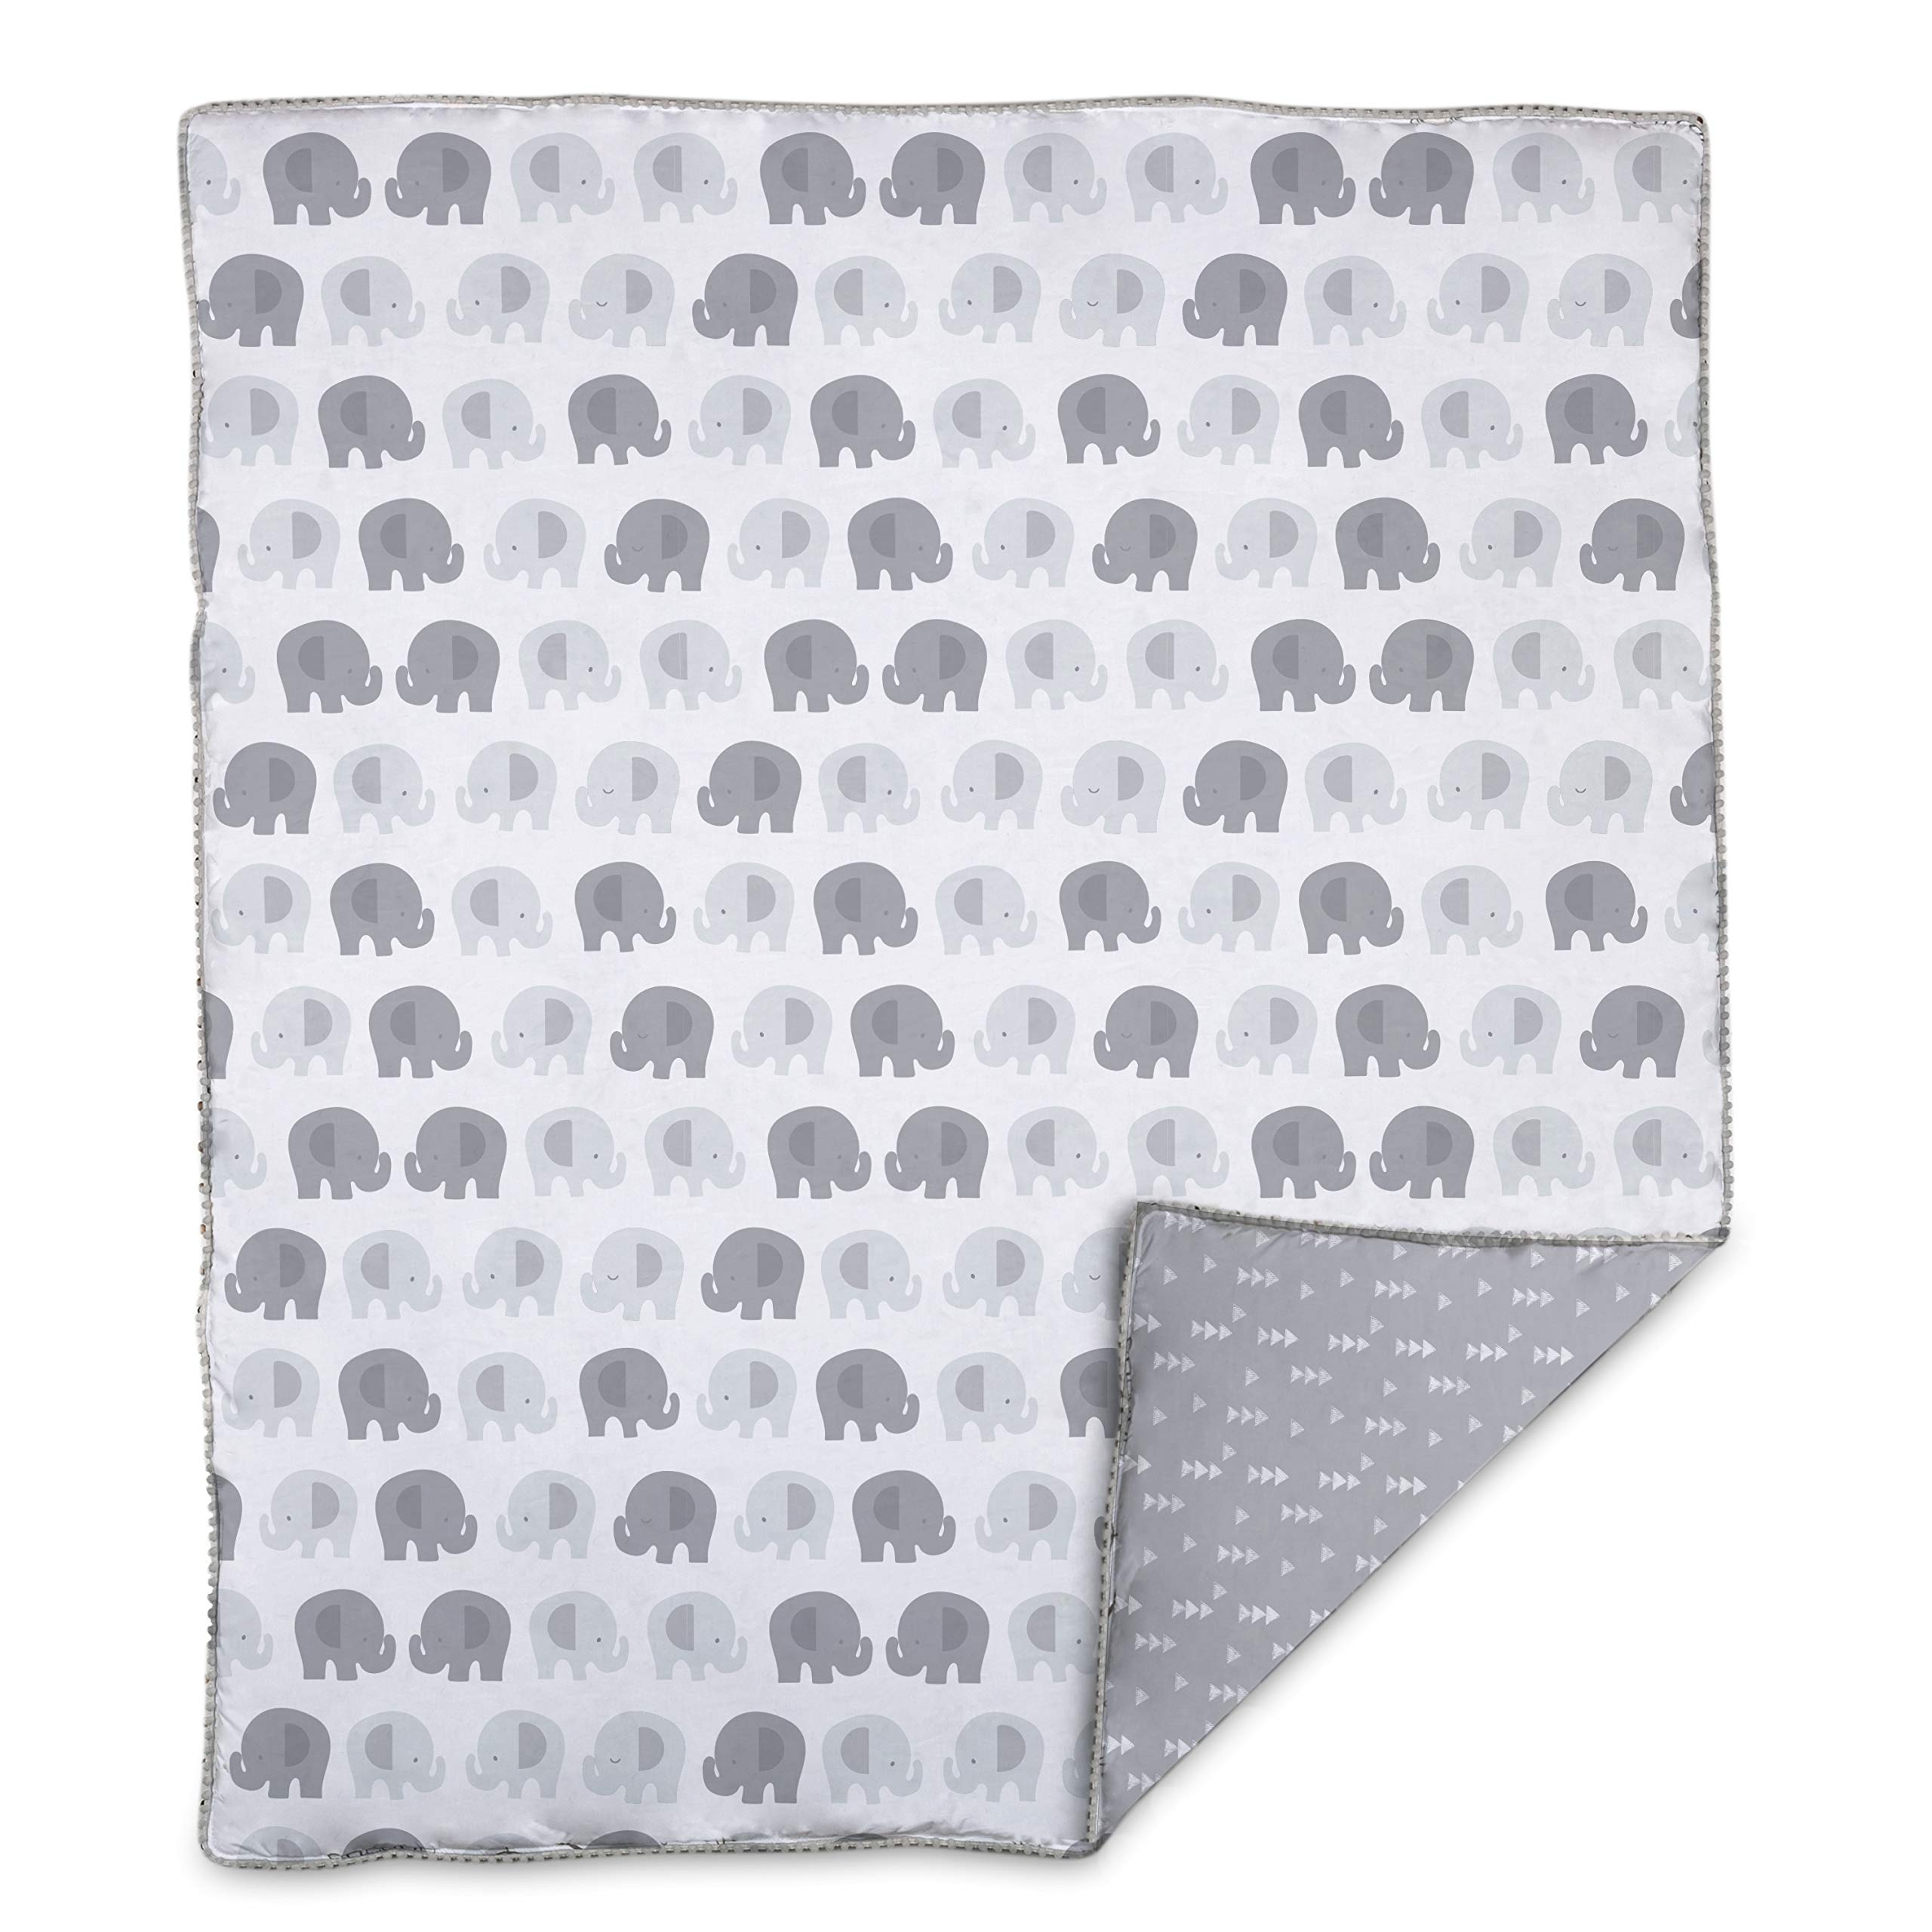 Lolli by Lolli Living Baby Comforter in Bailey Elephant Print. 100% Cotton Modern Baby Blanket (50x40 inch) by Lolli Living